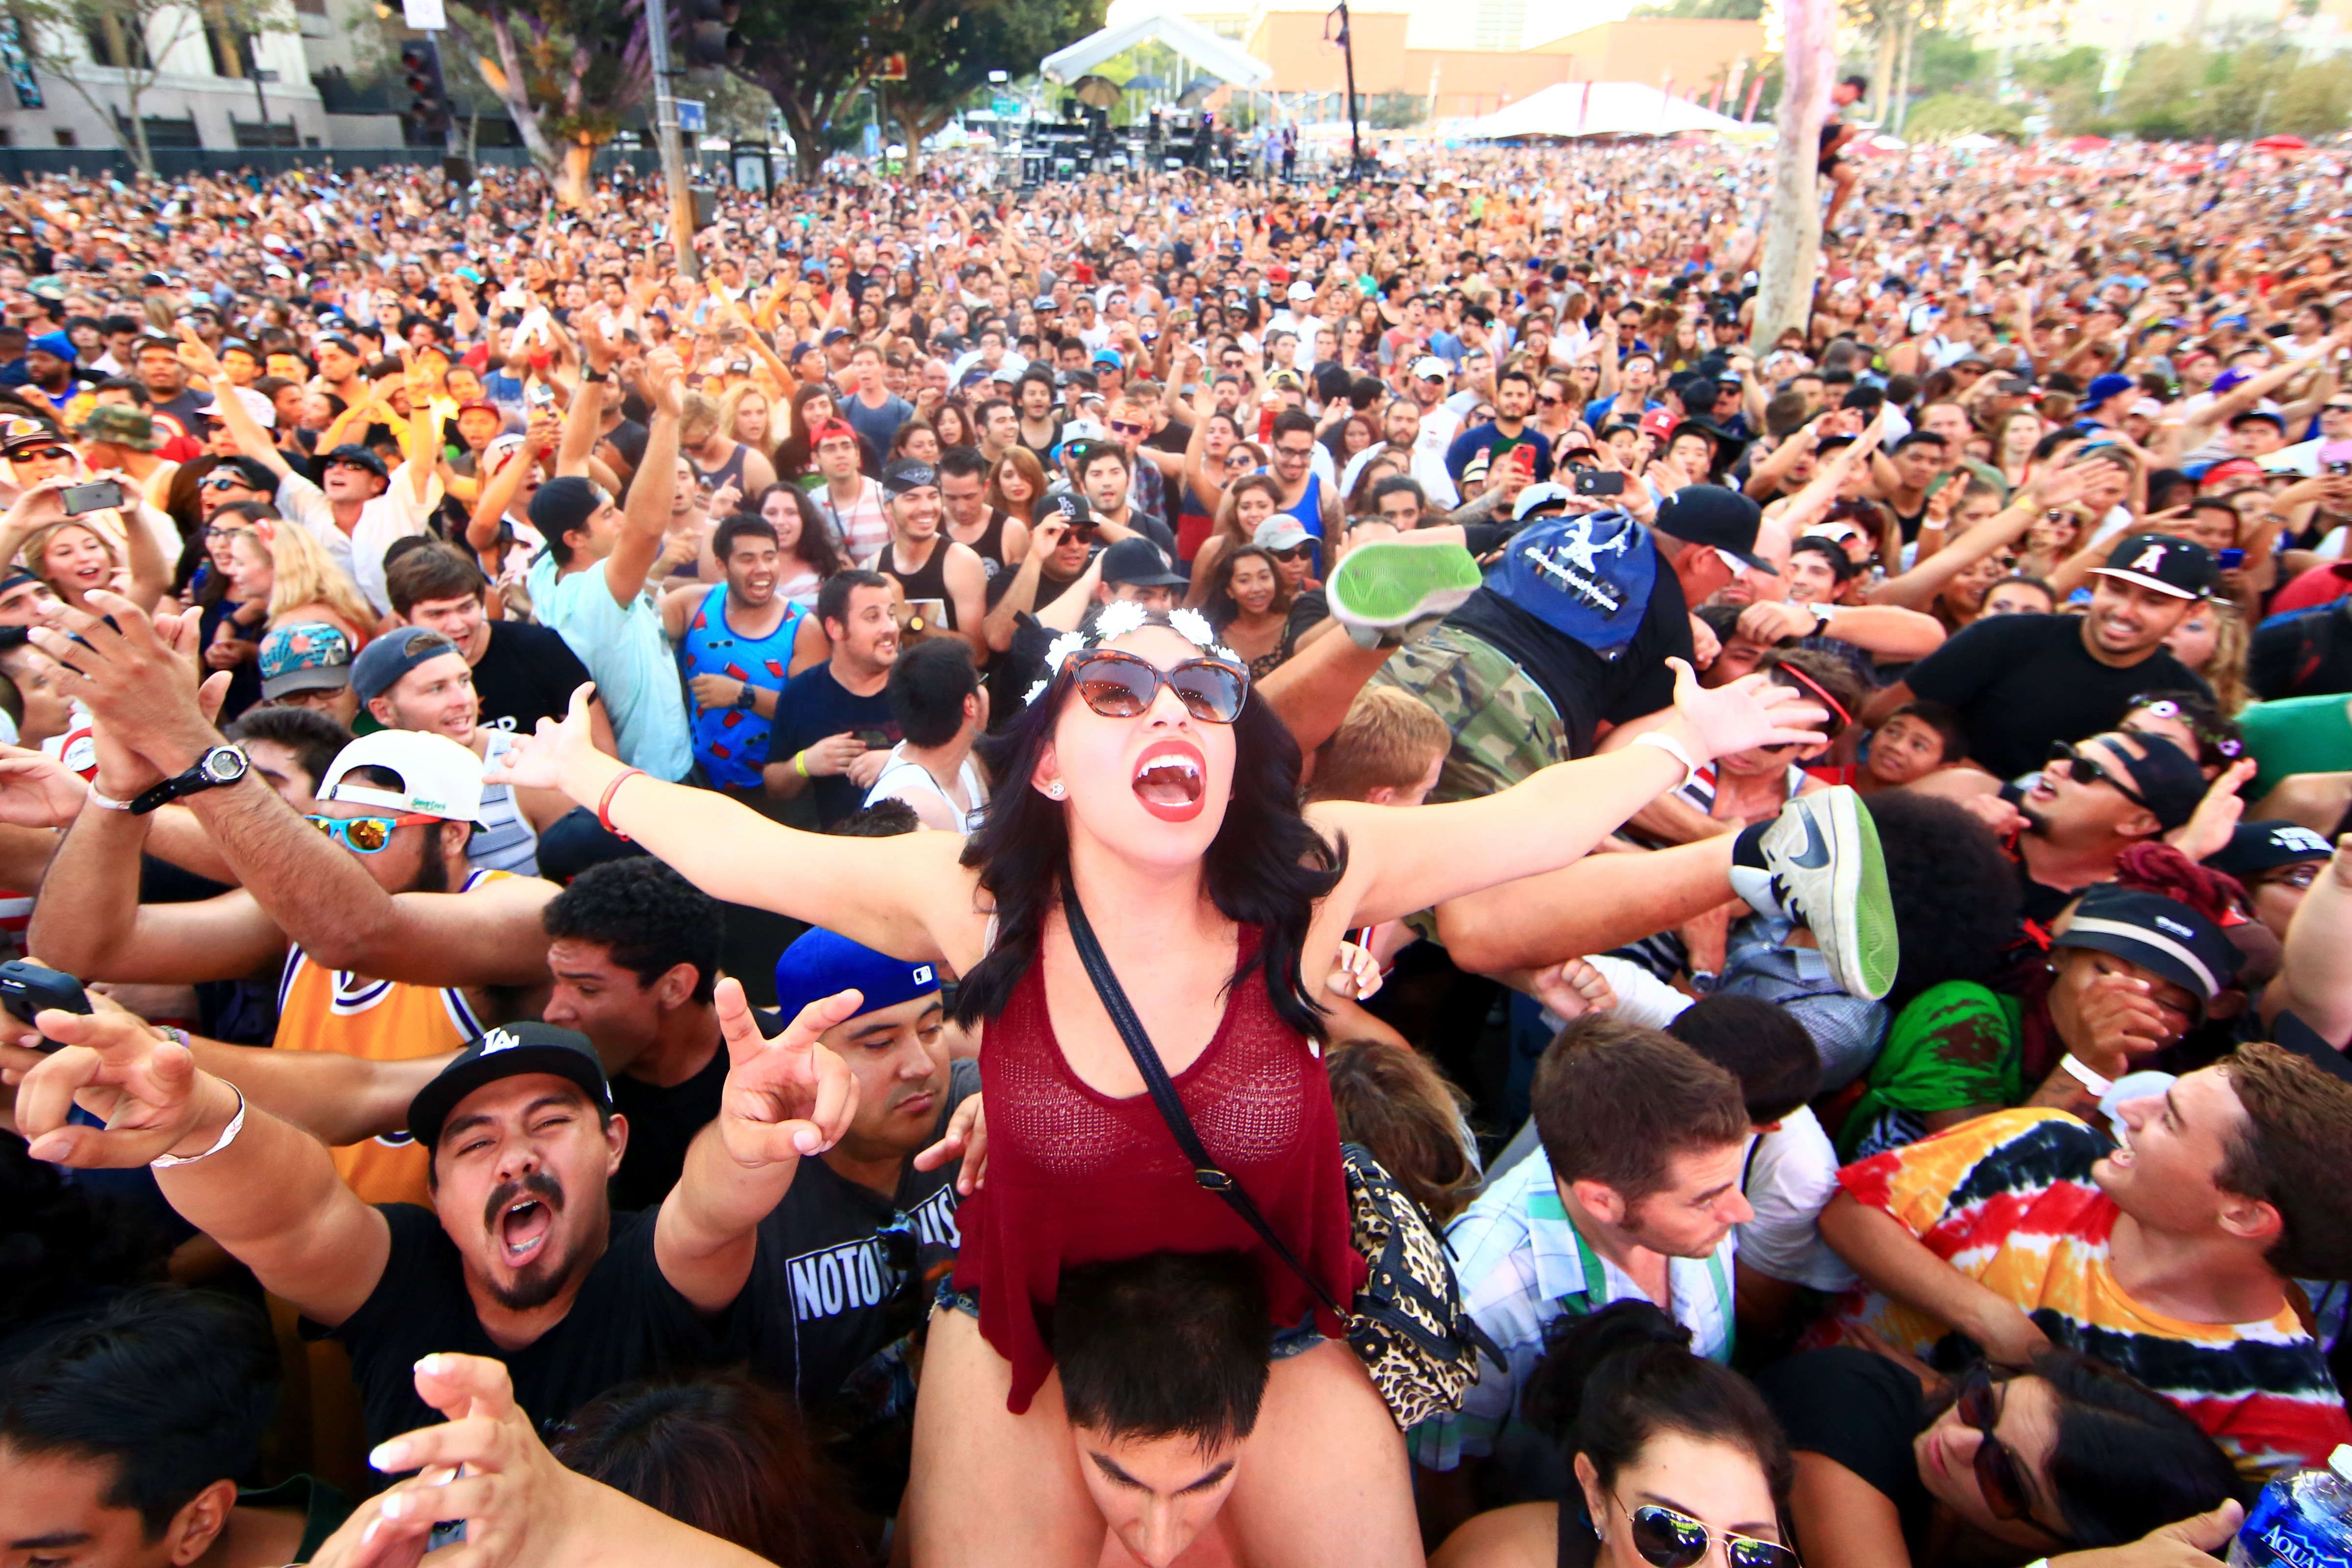 be7971f9e1 Summer 2015 s 50 Must-See Music Festivals – Rolling Stone